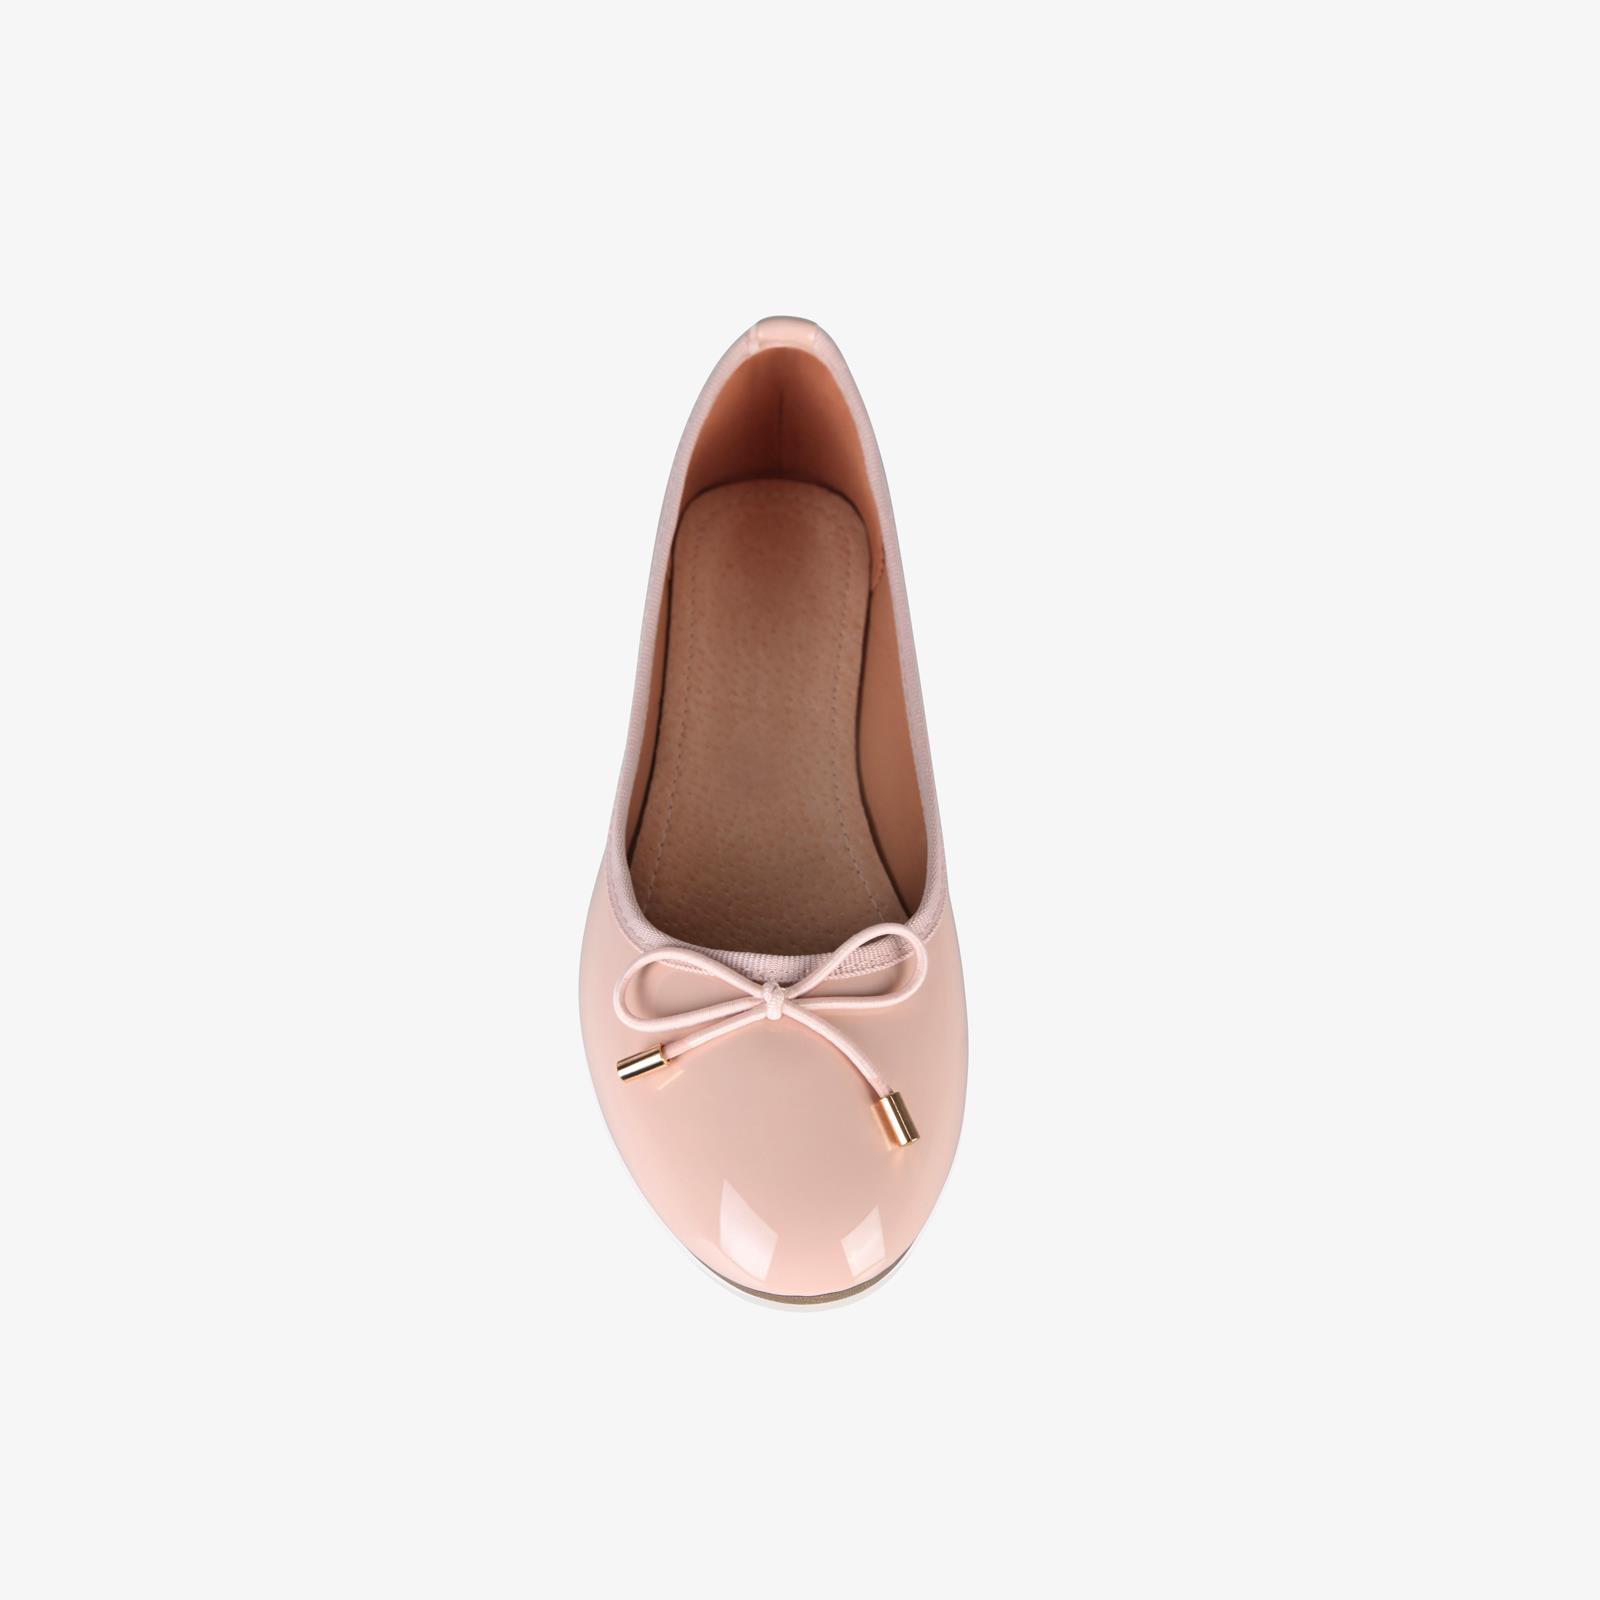 Womens-Ladies-Patent-Flat-Shoes-Ballerina-Ballet-Dolly-Court-Pumps-Slip-On-Bow thumbnail 9